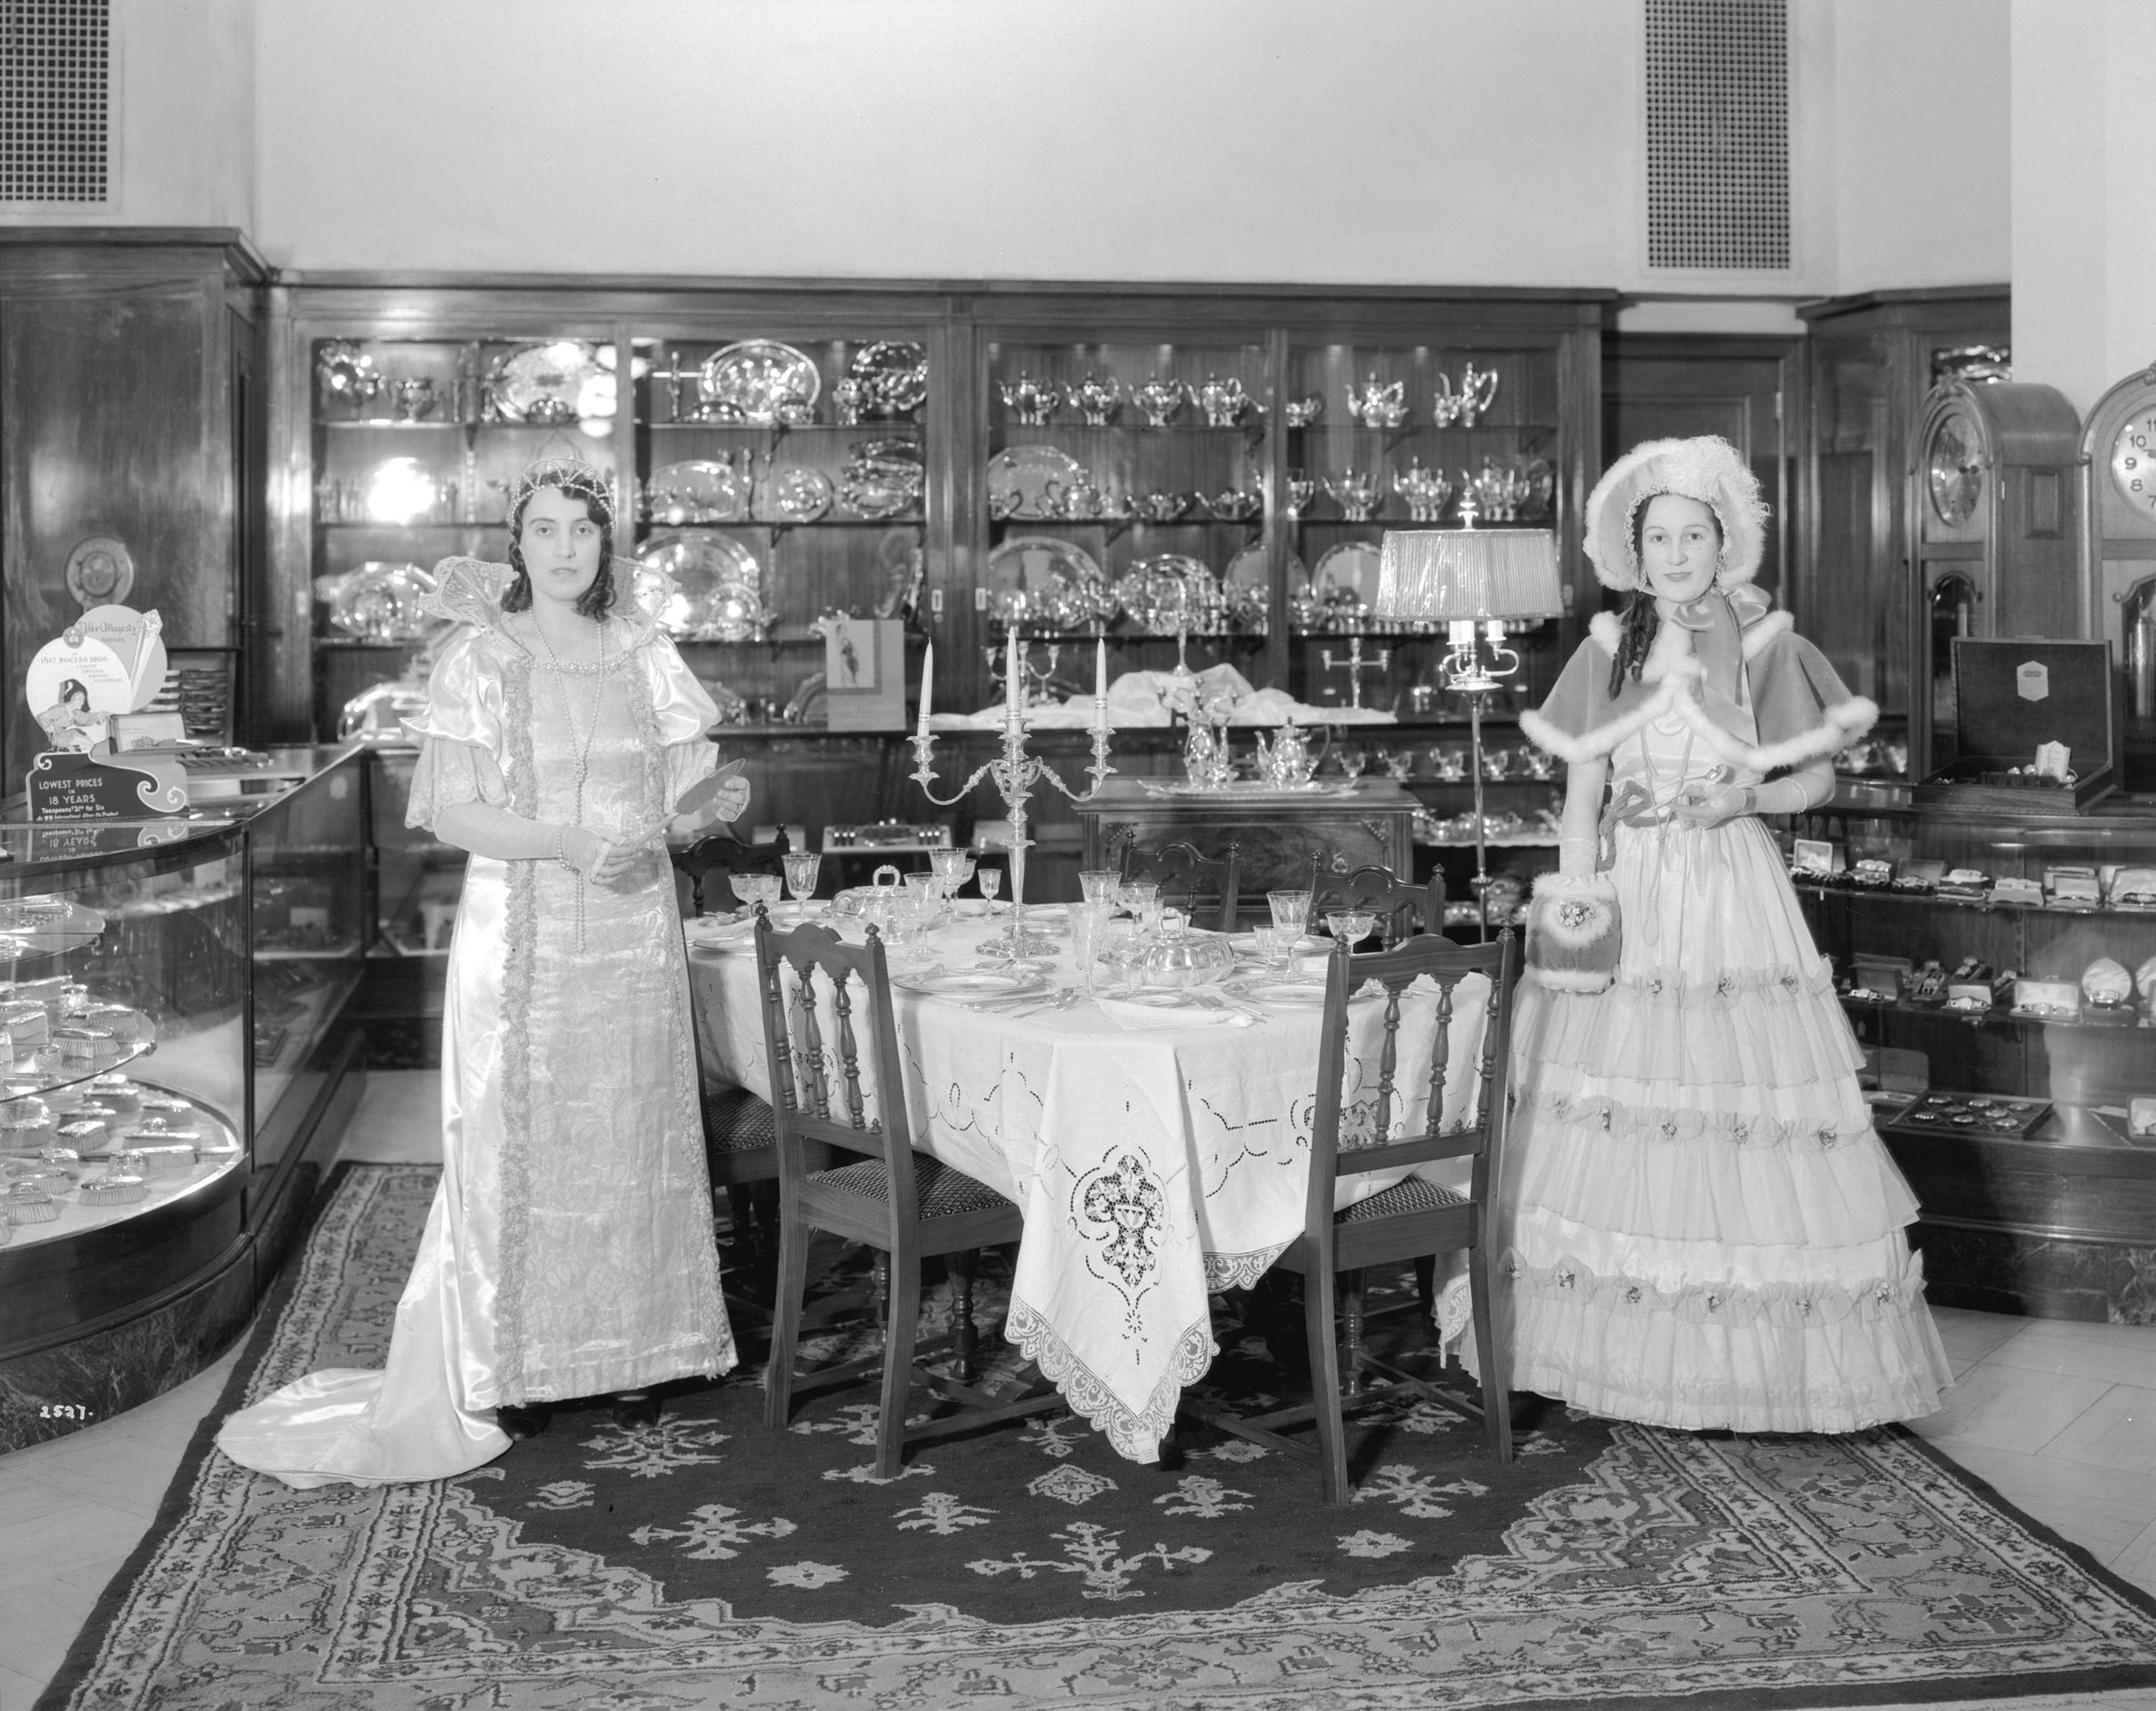 Models in period costumes display 'Community Plate' in the china and silverware department at Hudson's Bay in 1932 (Stuart Thomson/HBC)